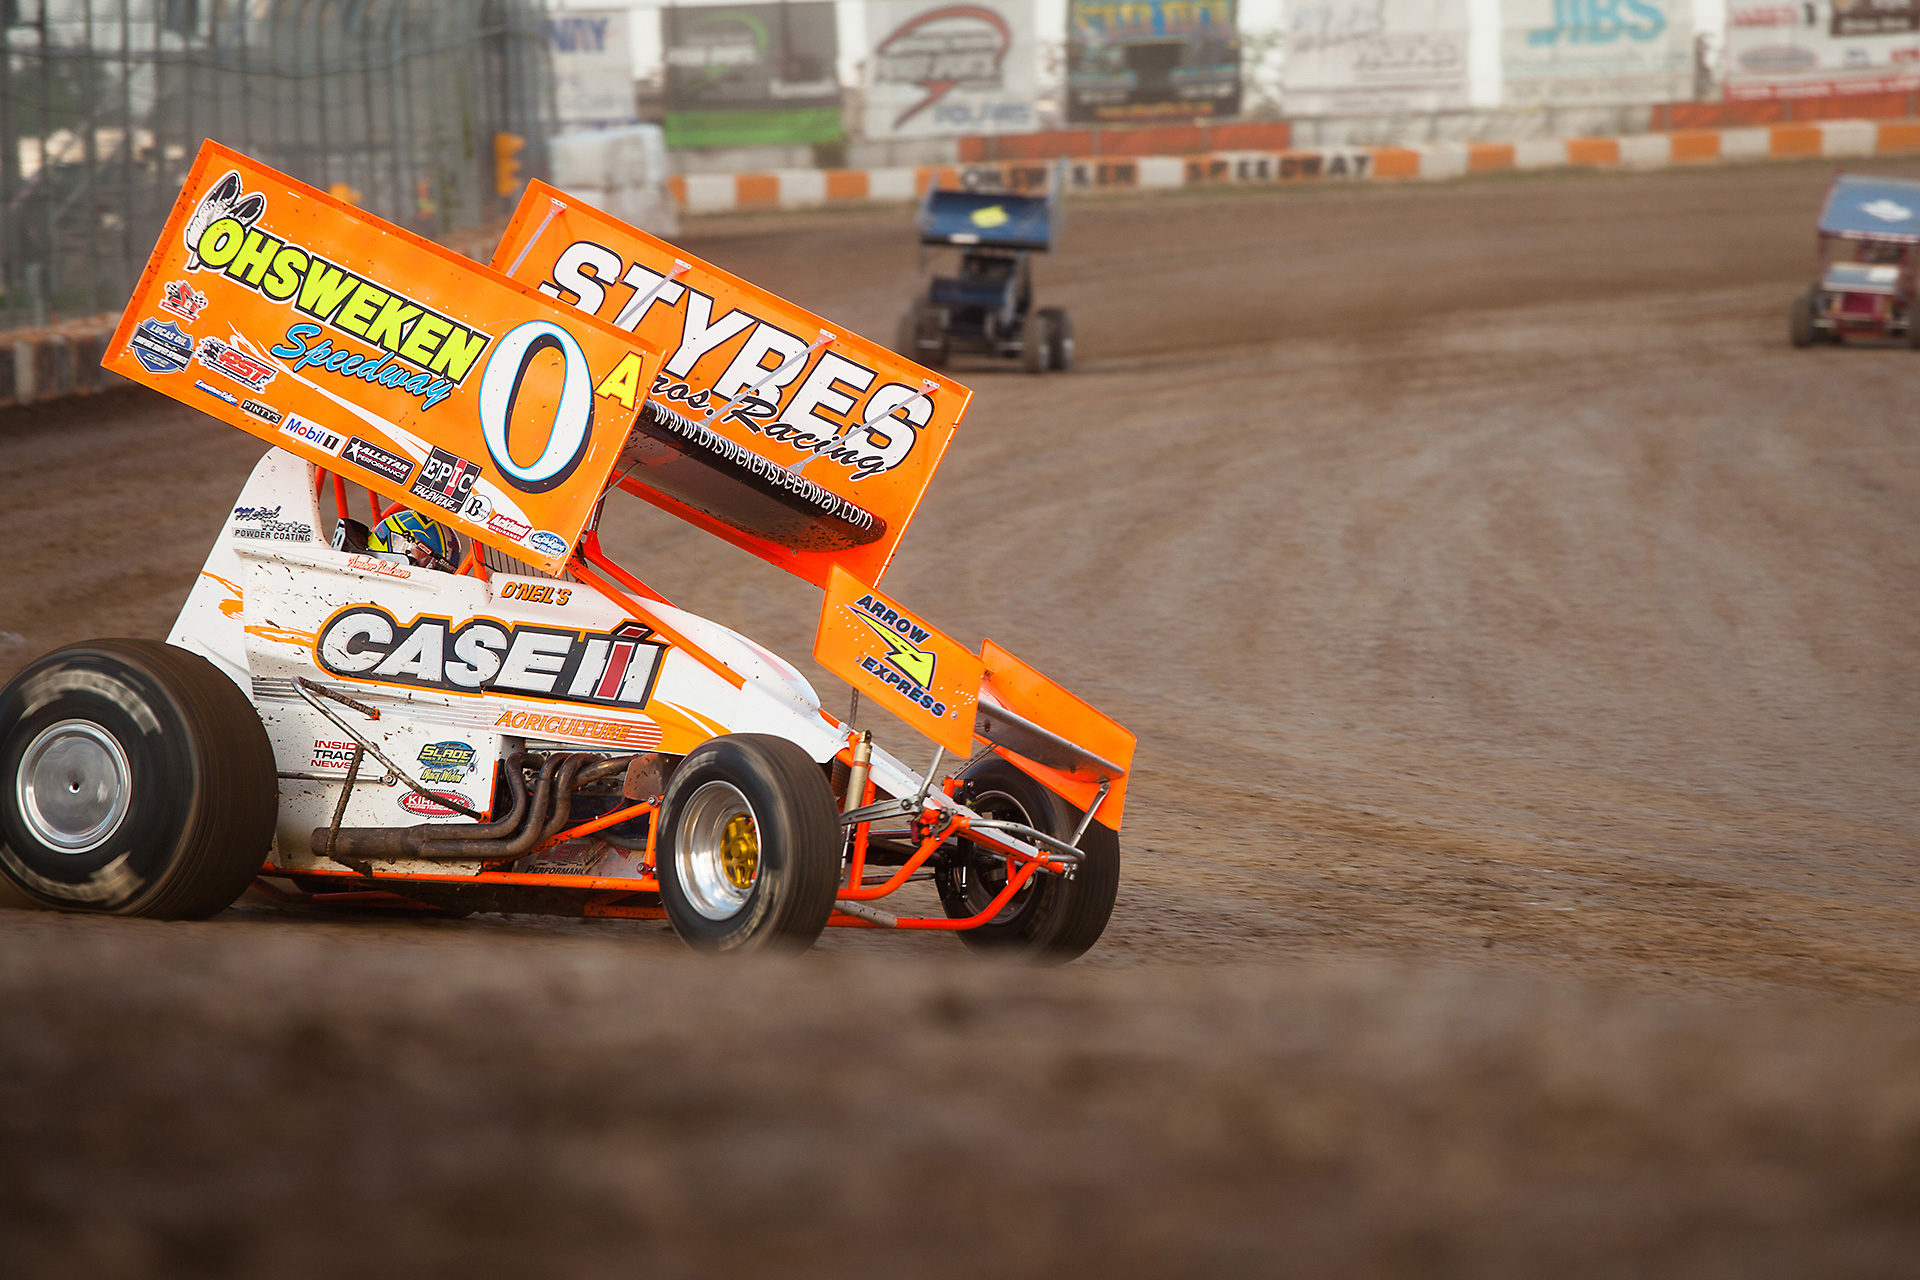 Amber Balcaen throws it into turn 3 during hot laps at the 2016 CSCN